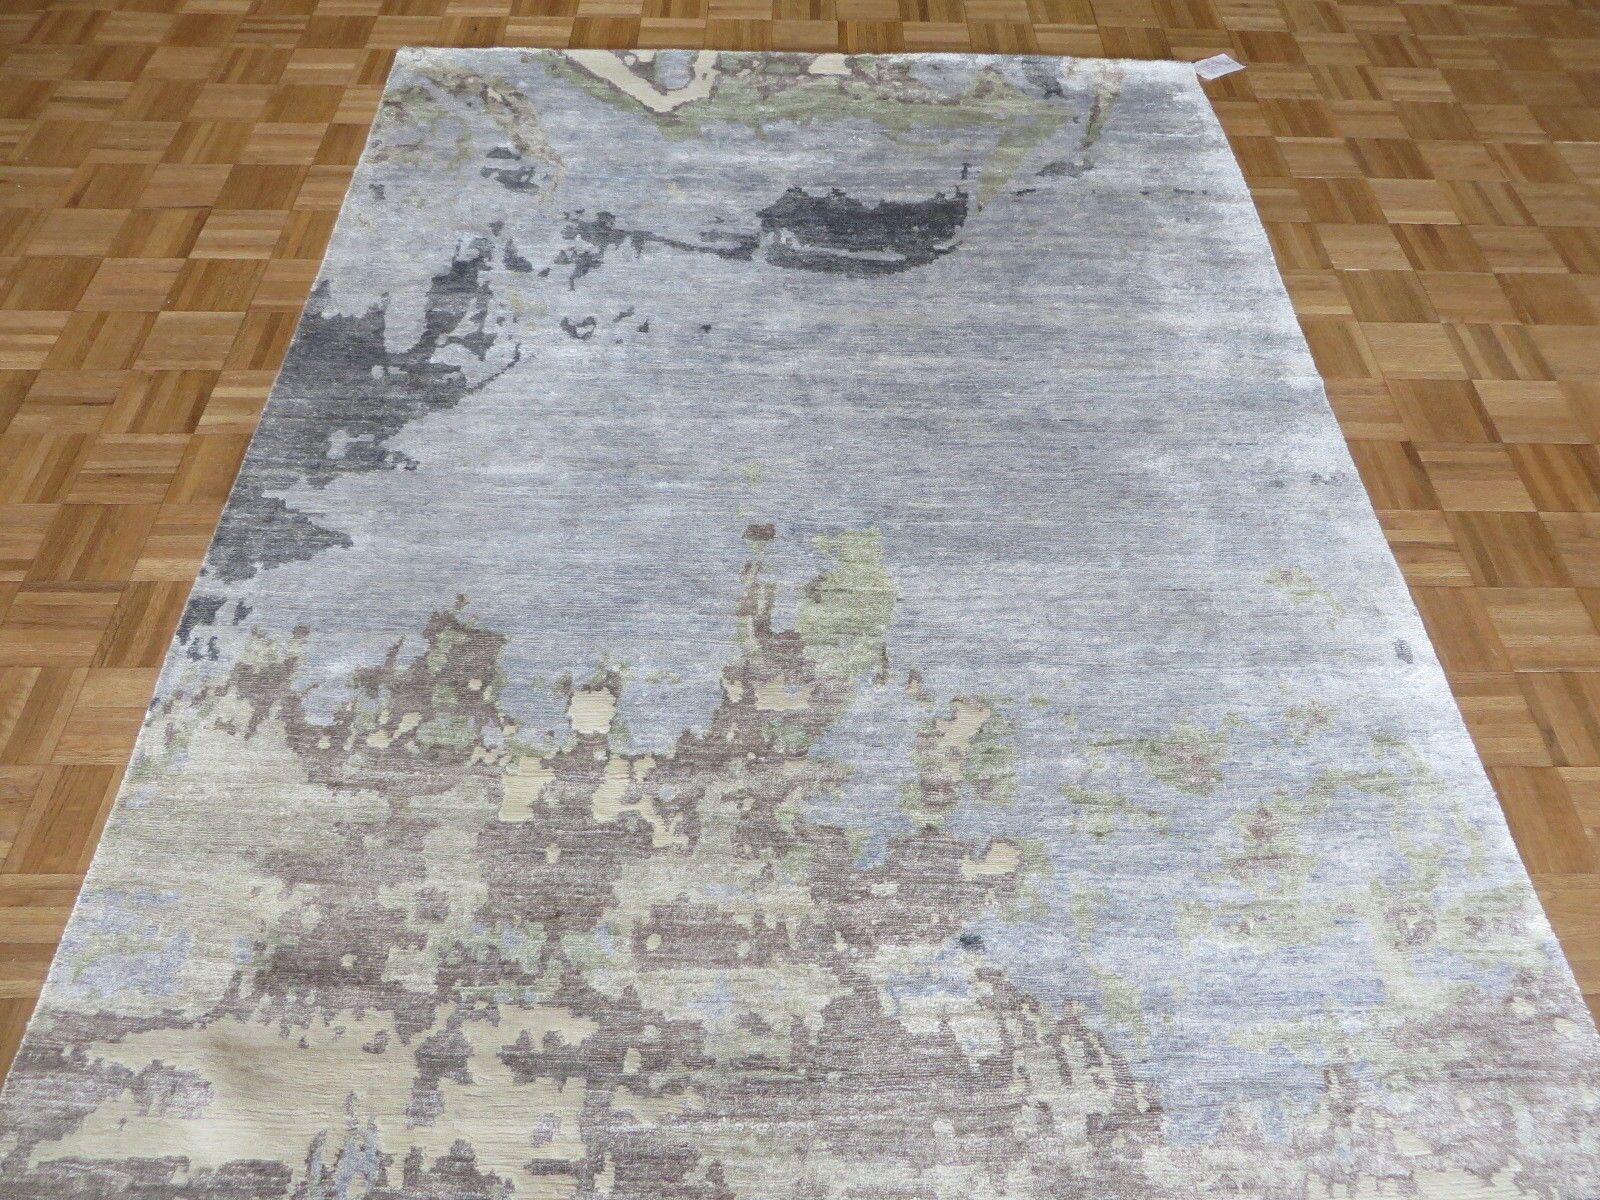 One-of-a-Kind Padang Sidempuan Modern Abstract Hand-Knotted Wool Sky Blue Area Rug Rug Size: Round 8'